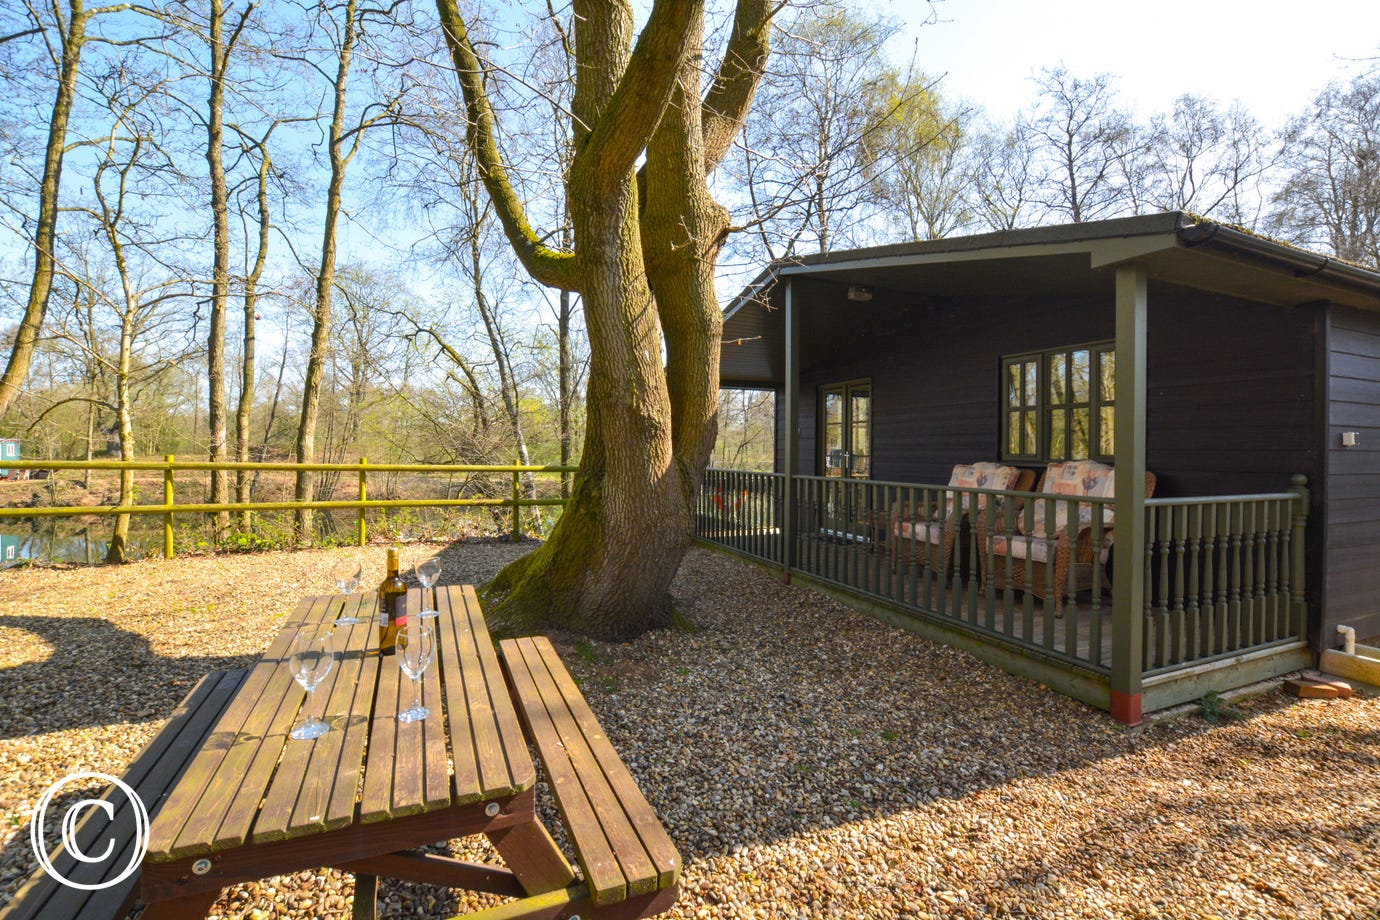 Porters Lodge is one of two detached lakeside lodges in a secluded fully enclosed setting comprising of a two acre lake surrounded by around three acres of tree-lined pathways/drive and picnic area.